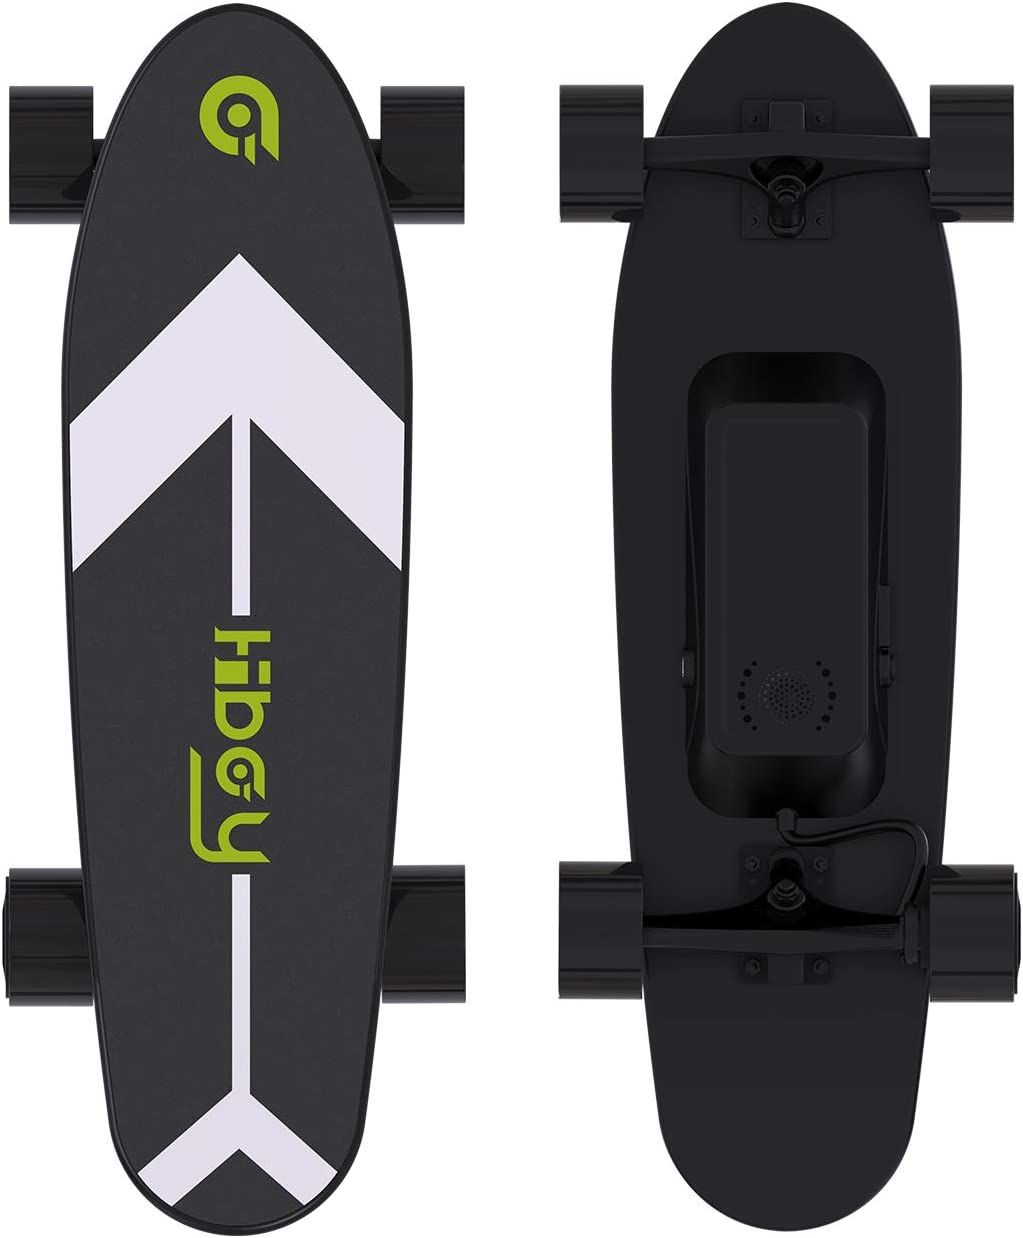 Hiboy Electric Skateboard with Wireless Remote E-Skateboard for Adults and Youths 2019 Upgraded Version